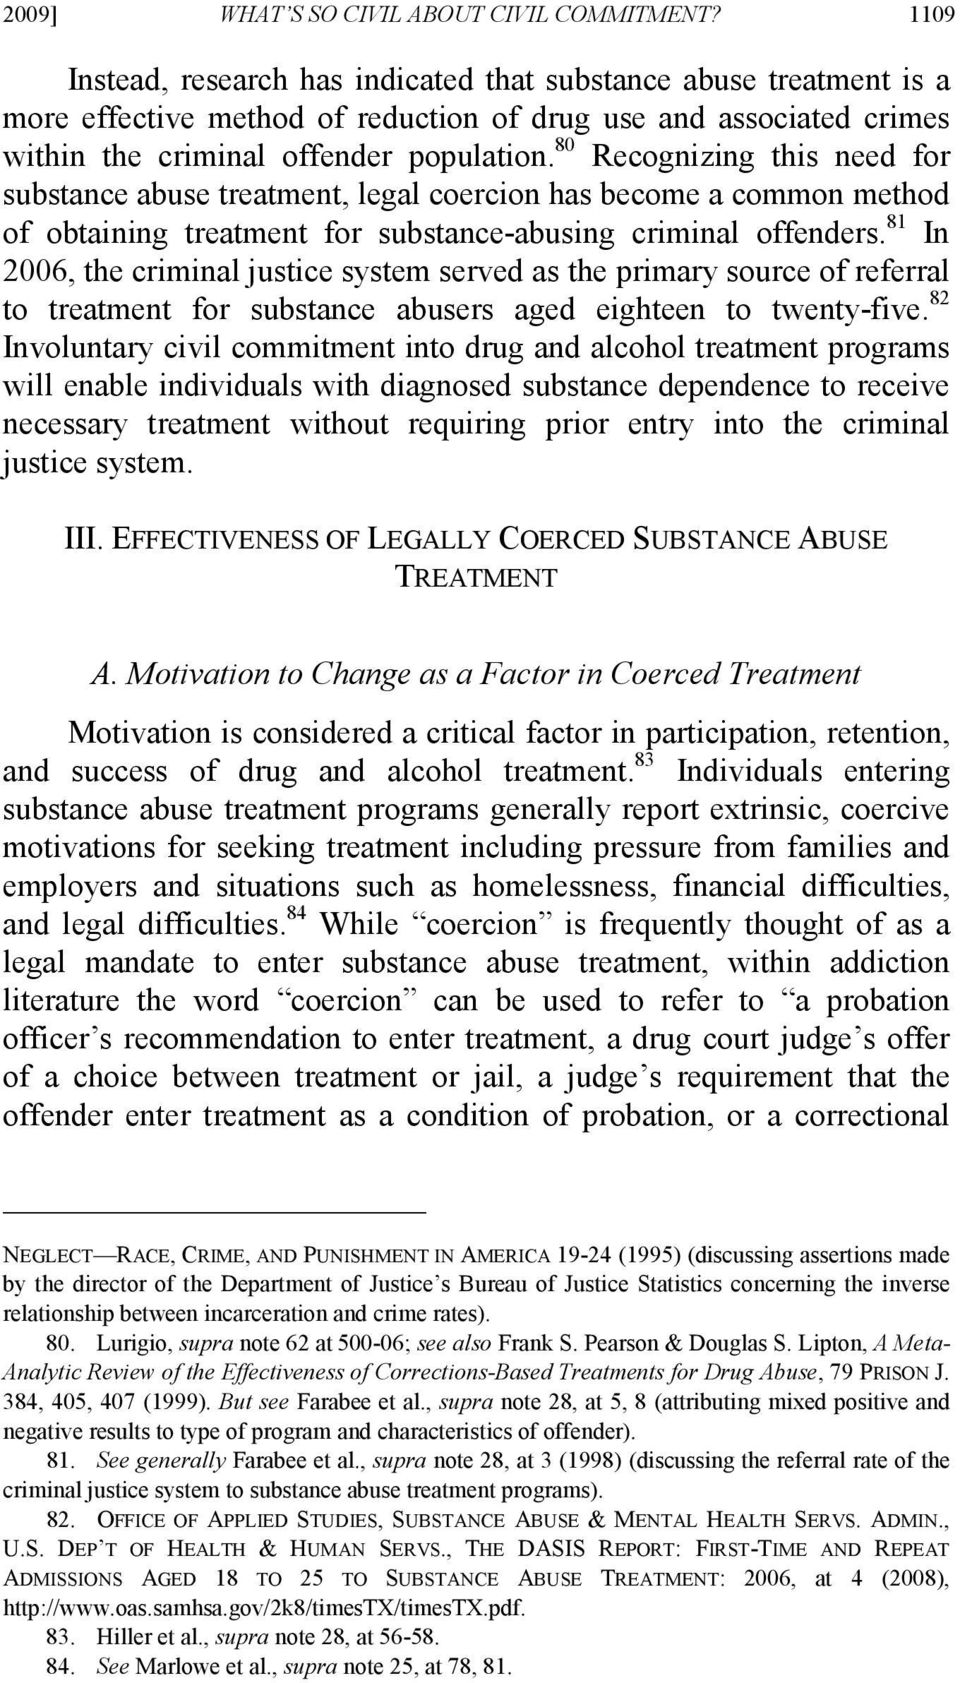 80 Recognizing this need for substance abuse treatment, legal coercion has become a common method of obtaining treatment for substance-abusing criminal offenders.